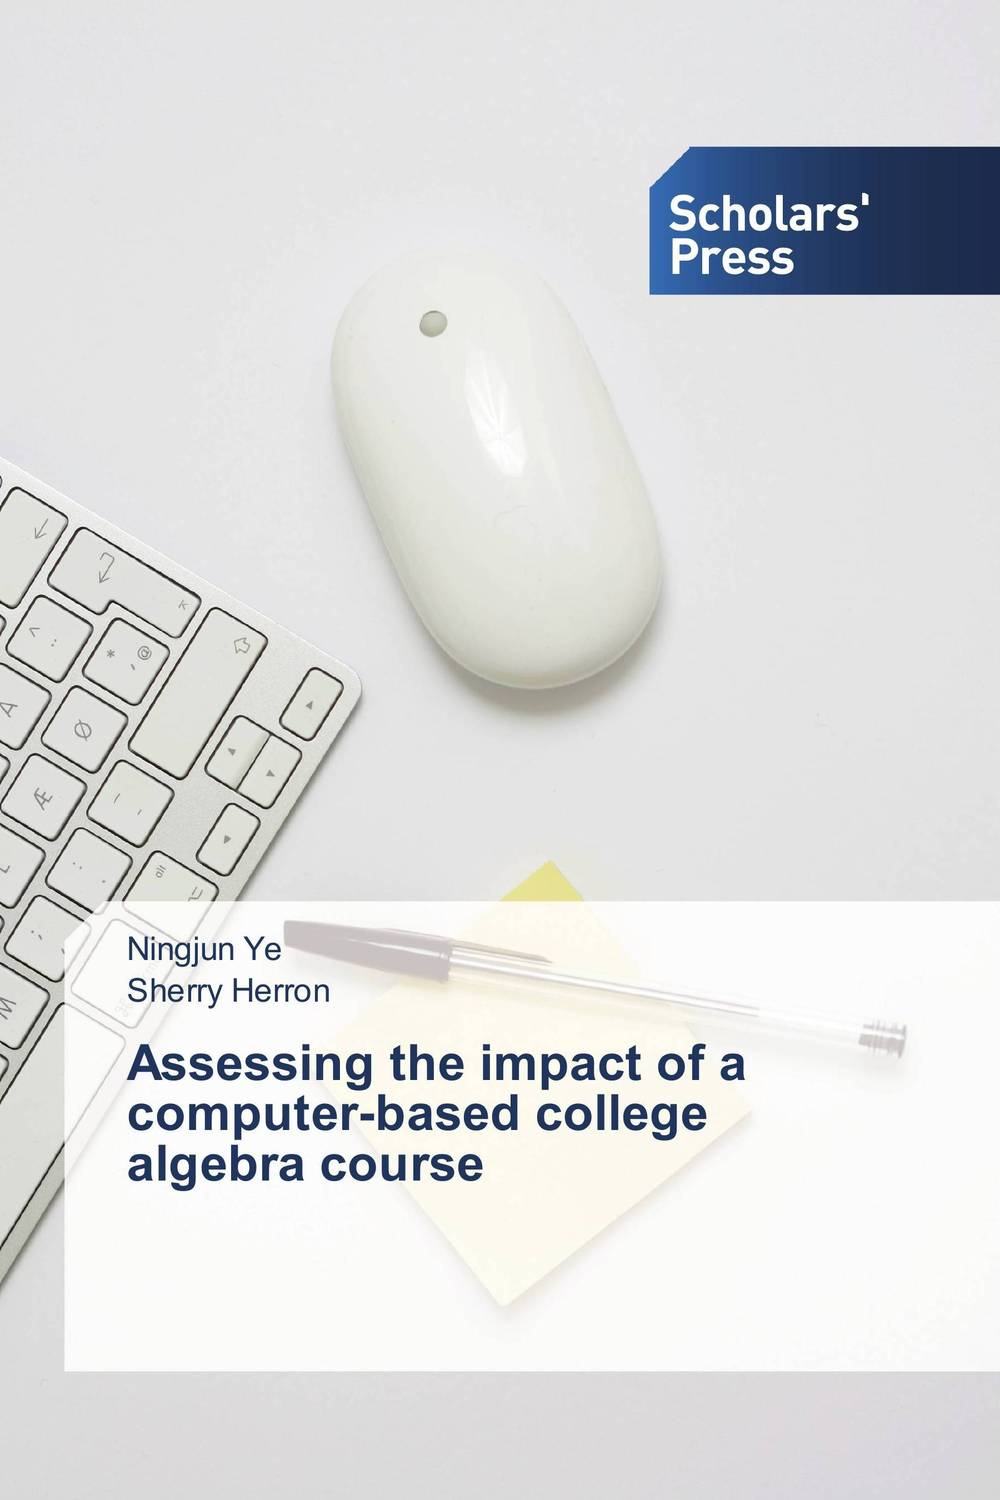 Assessing the impact of a computer-based college algebra course franke bibliotheca cardiologica ballistocardiogra phy research and computer diagnosis